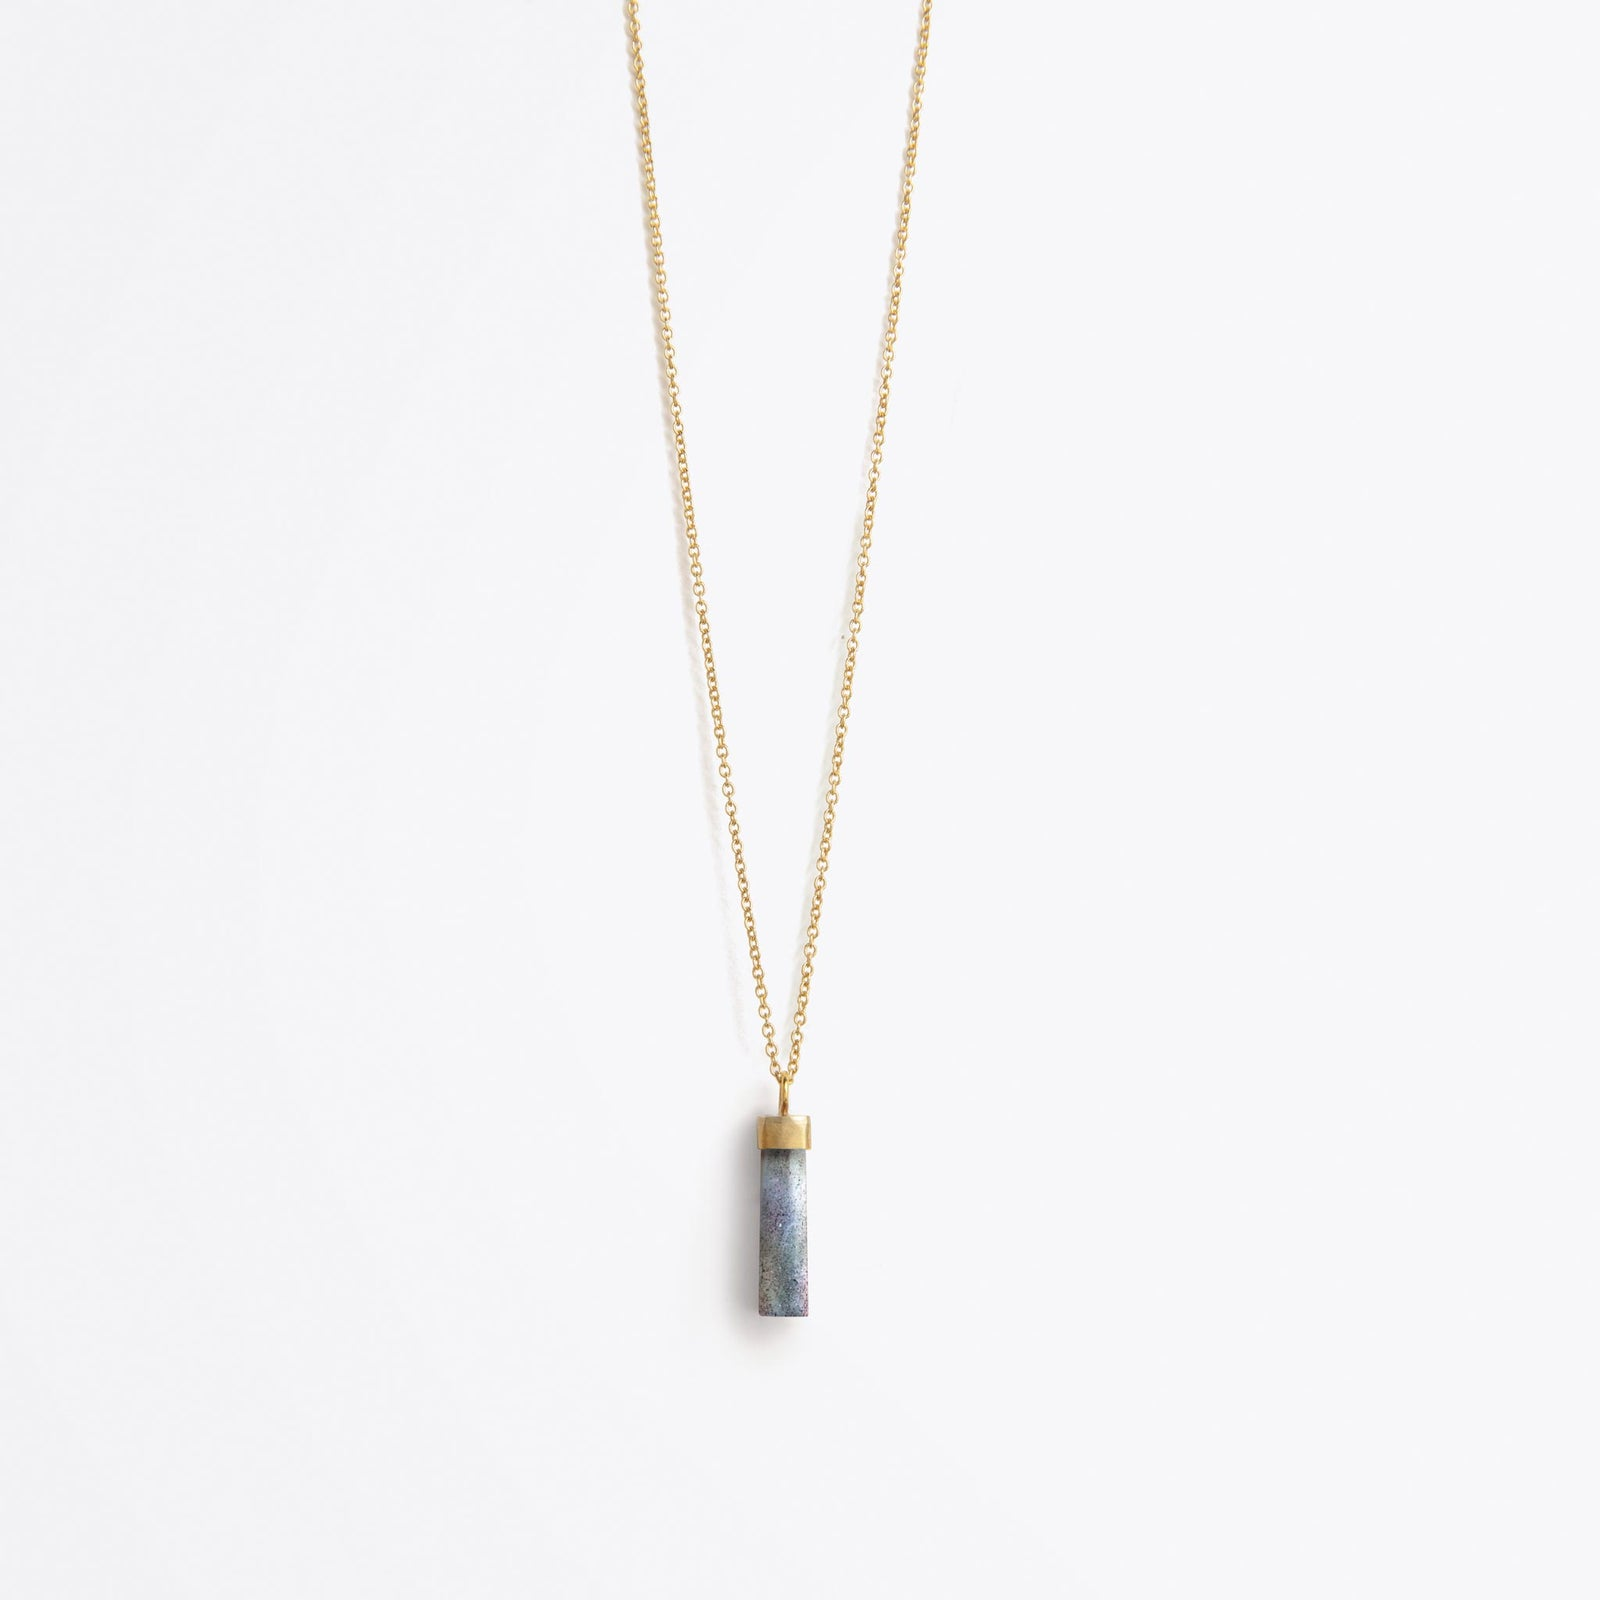 talisman fine gold chain necklace | iridescent labradorite